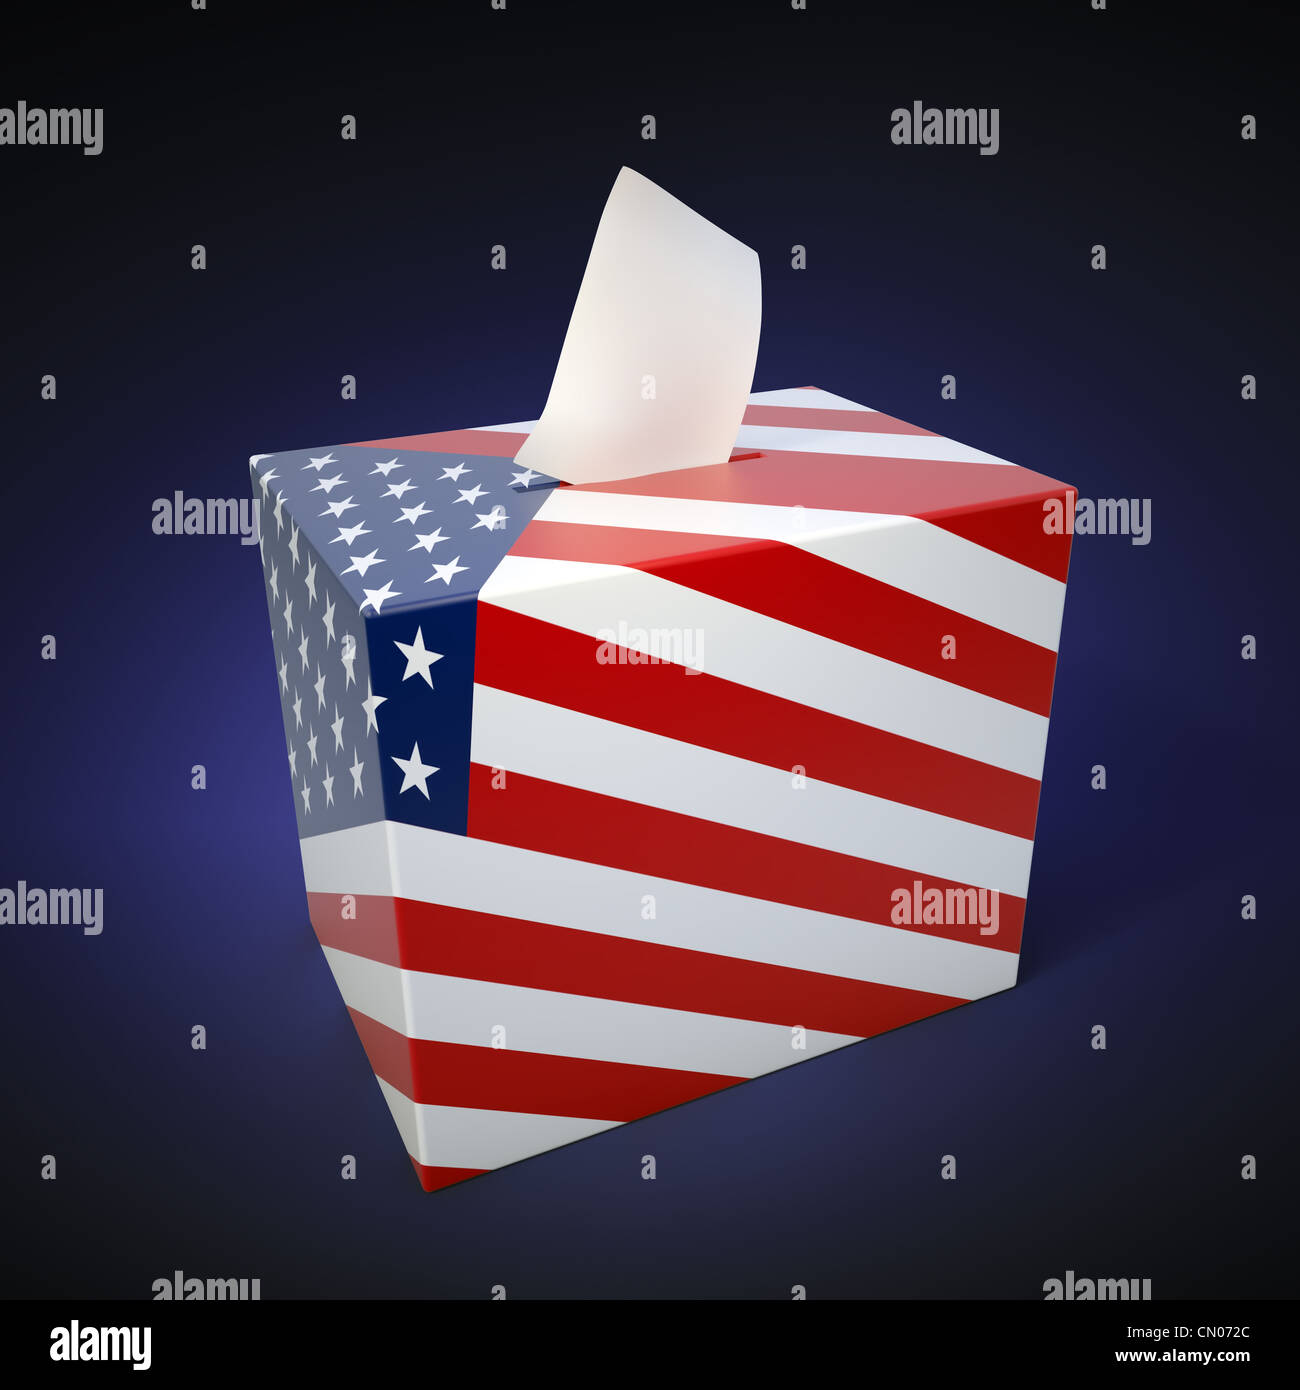 US elections - ballot box with flag colors - Stock Image